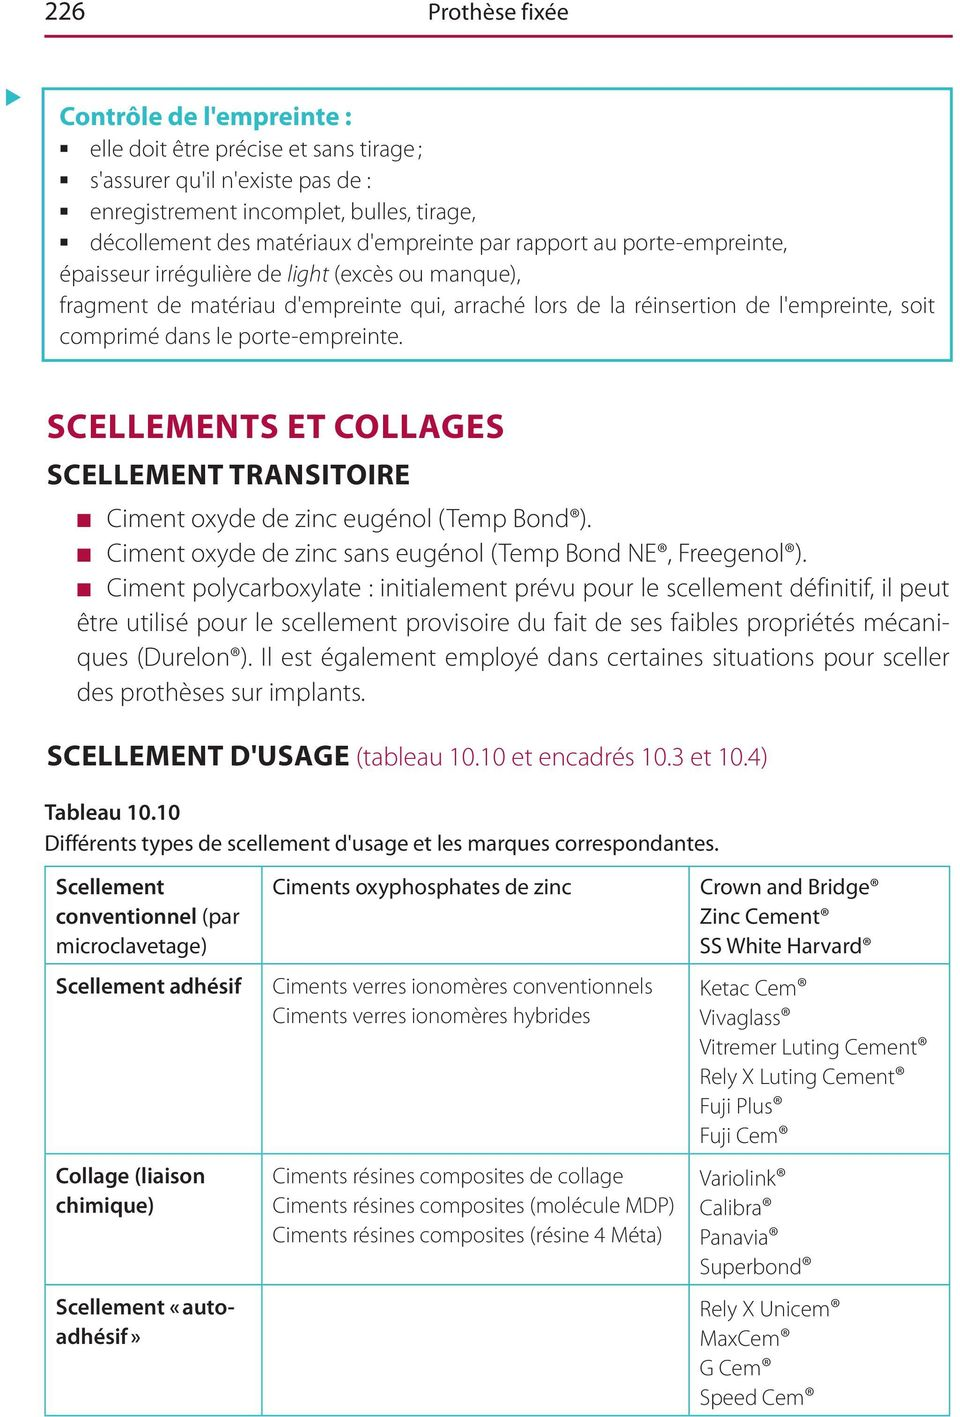 porte-empreinte. SCELLEMENTS ET COLLAGES SCELLEMENT TRANSITOIRE Ciment oxyde de zinc eugénol (Temp Bond ). Ciment oxyde de zinc sans eugénol (Temp Bond NE, Freegenol ).